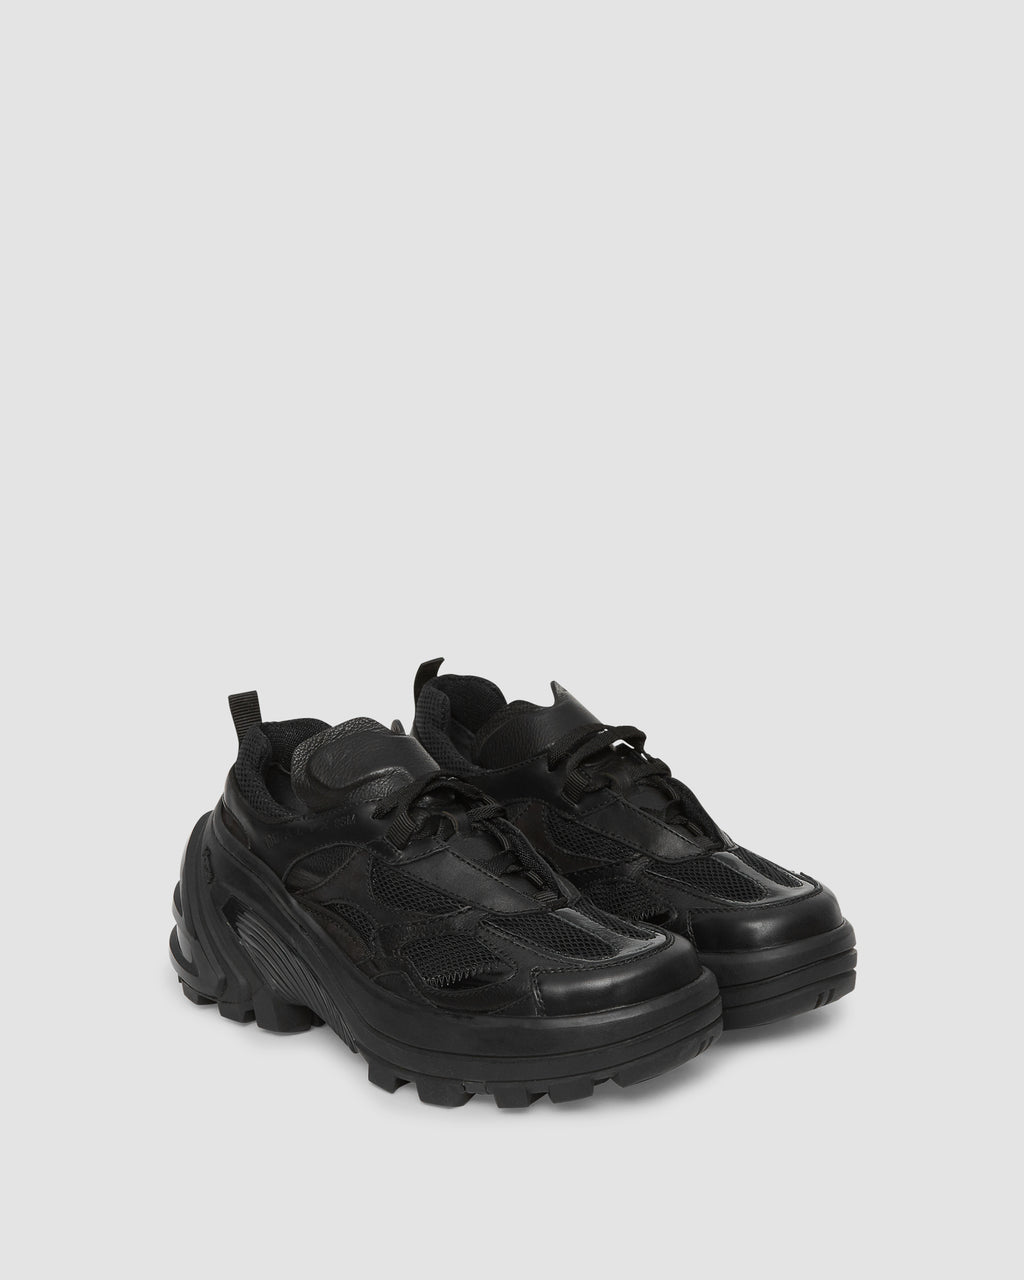 1017 ALYX 9SM | INDIVISIBLE SNEAKER | Shoe | BLACK, Google Shopping, Man, S20, S20 Drop II, Shoes, SNEAKERS, UNISEX, Woman